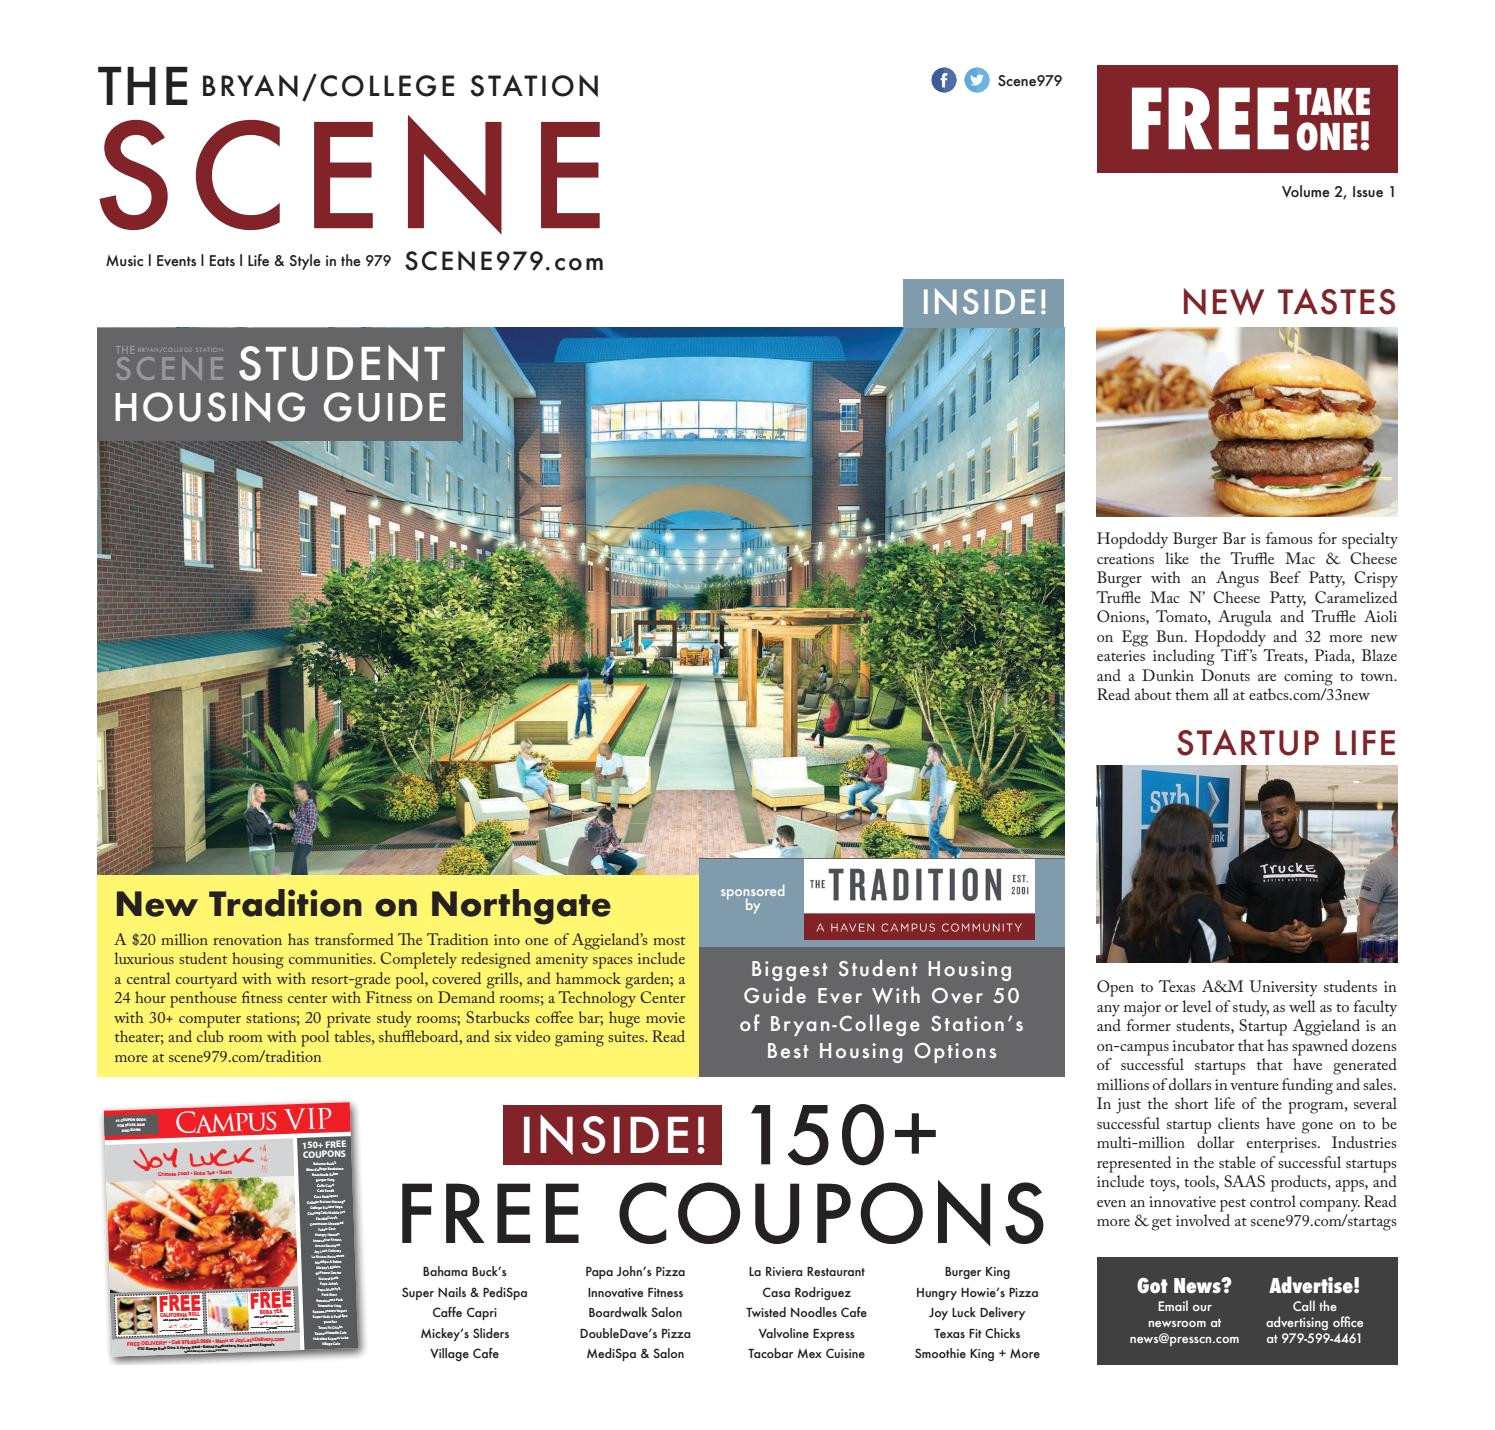 Tiff S Treats Cookie Delivery College Station Bryan College Station Scene Summer 2017 by David Flash issuu